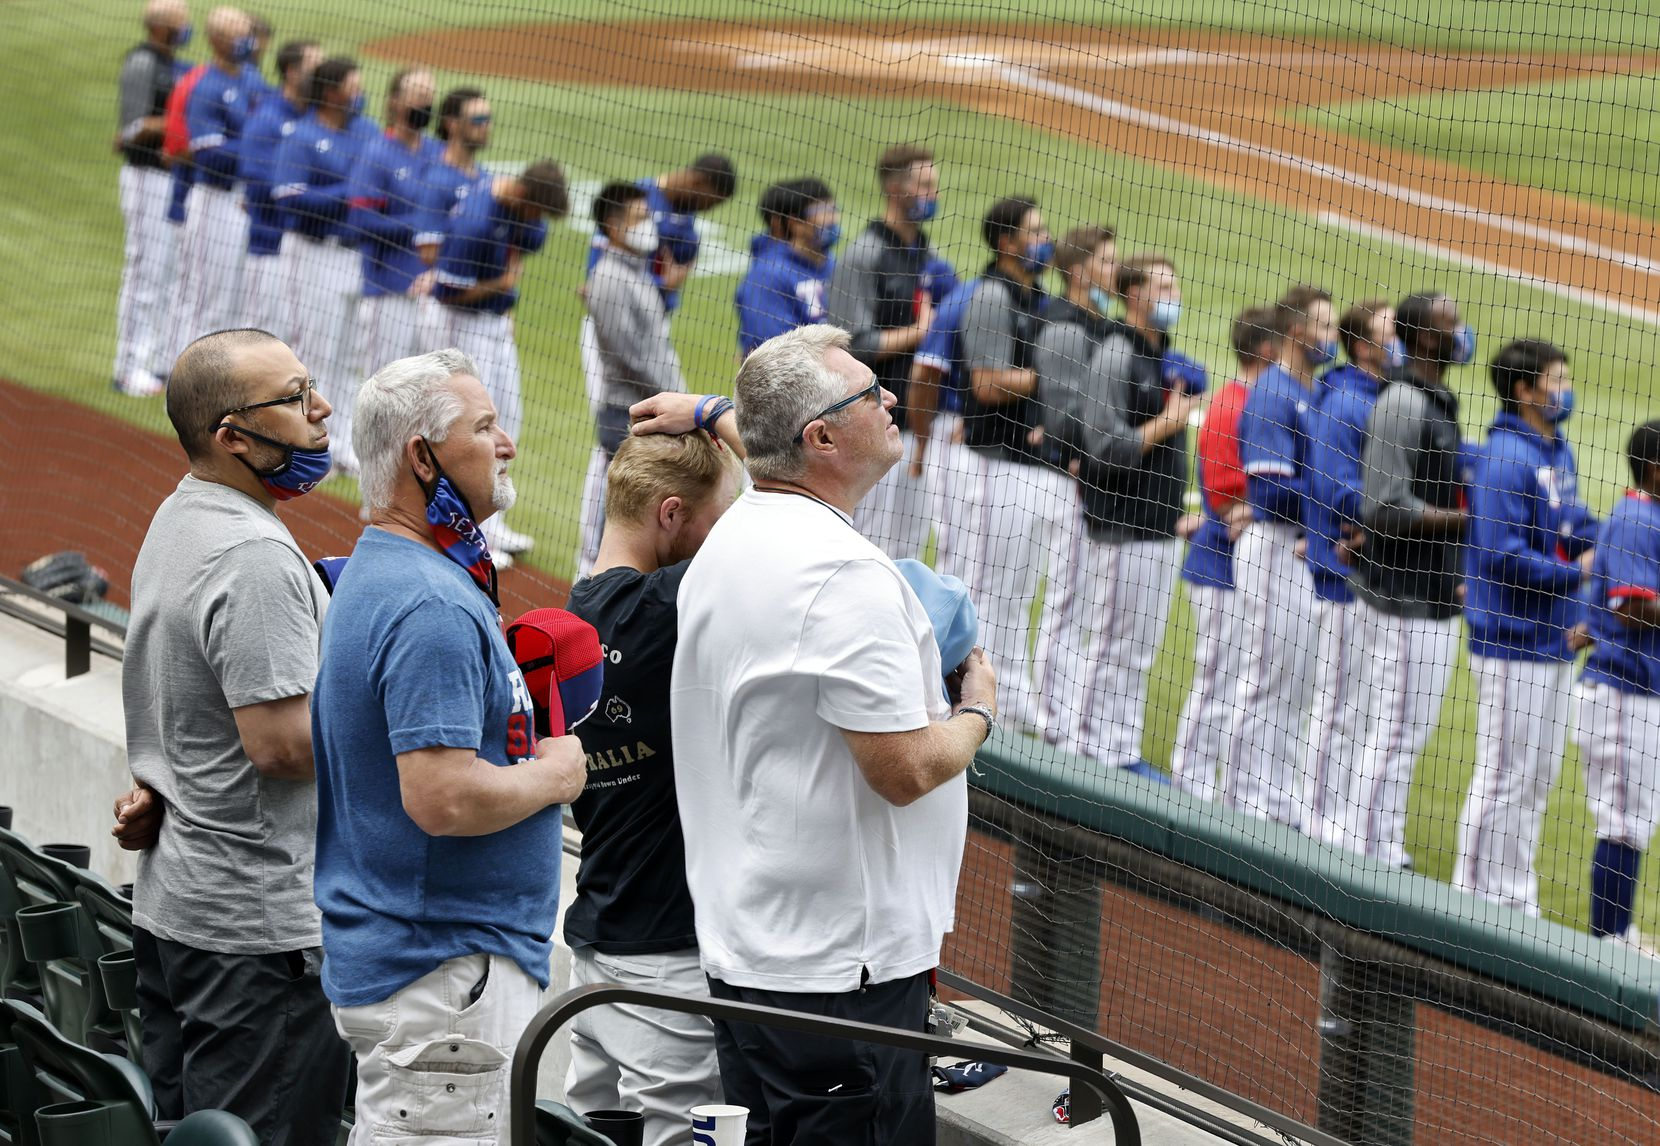 Texas Rangers fans and players stand for the national anthem before their game against the Milwaukee Brewers at Globe Life Field in Arlington, Texas. The teams were playing in an exhibition game, Tuesday, March 30, 2021.